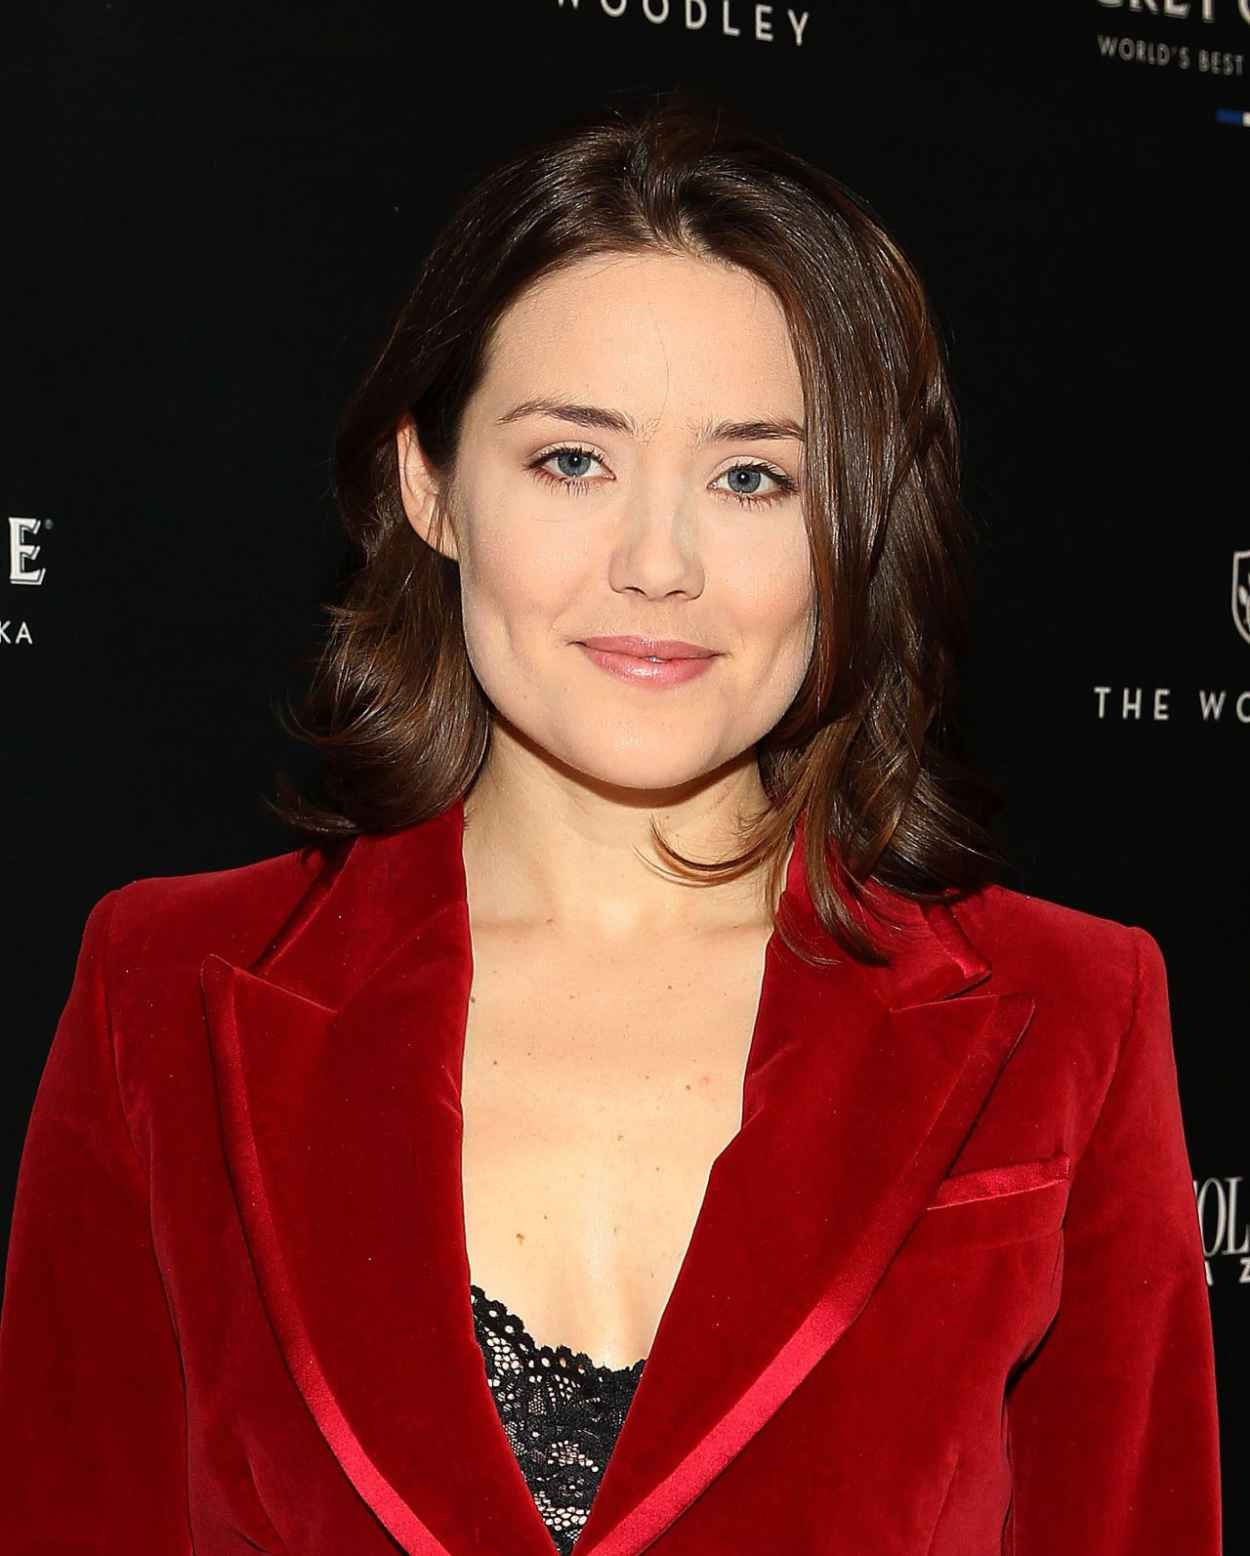 Megan Boone - Capitol File Holiday Issue Celebration in Washington D.C. - December 2015-2